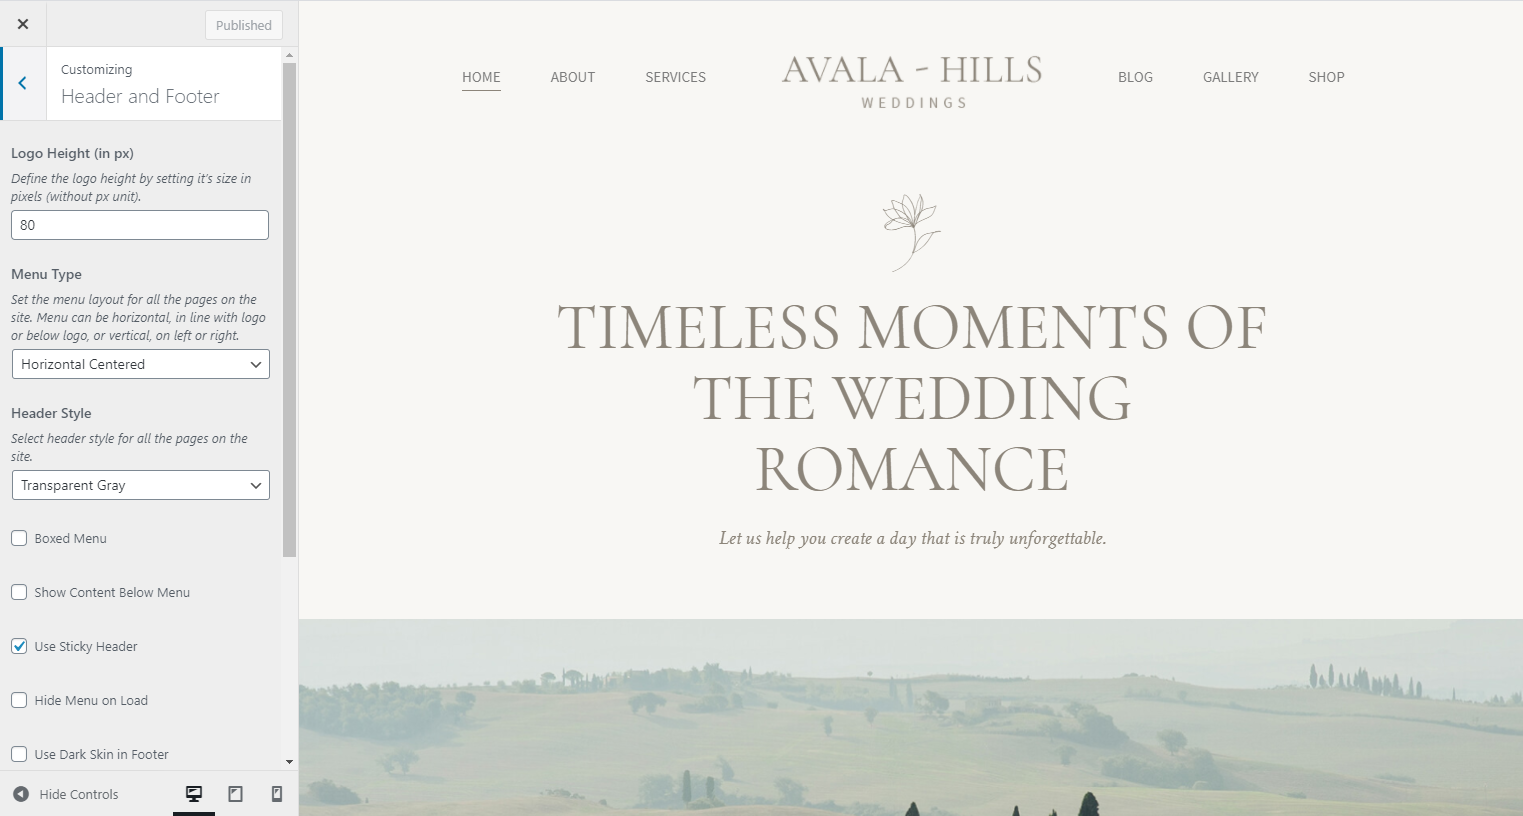 http://documentation.bold-themes.com/avala/wp-content/uploads/sites/63/2021/01/header-and-footer.png